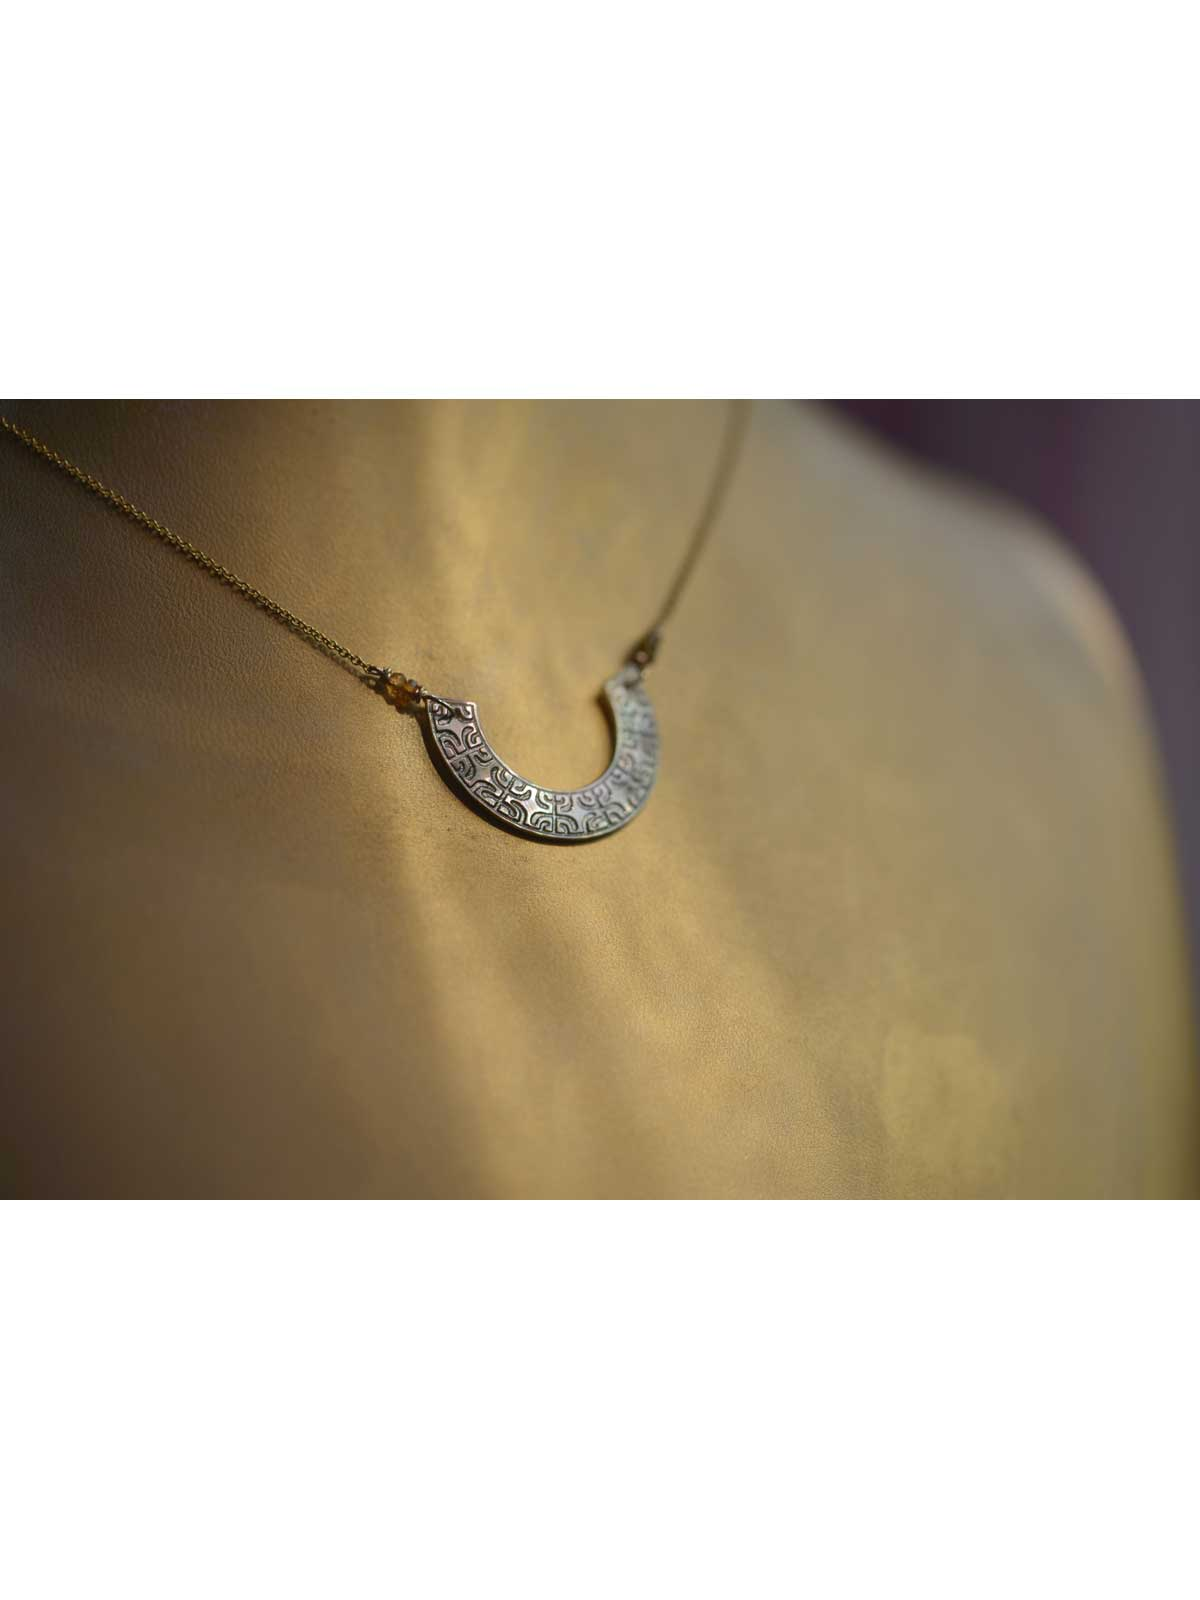 Necklace in Gold-filled 14 Karat chain with pendant in Mother-of-pearl of Tahiti